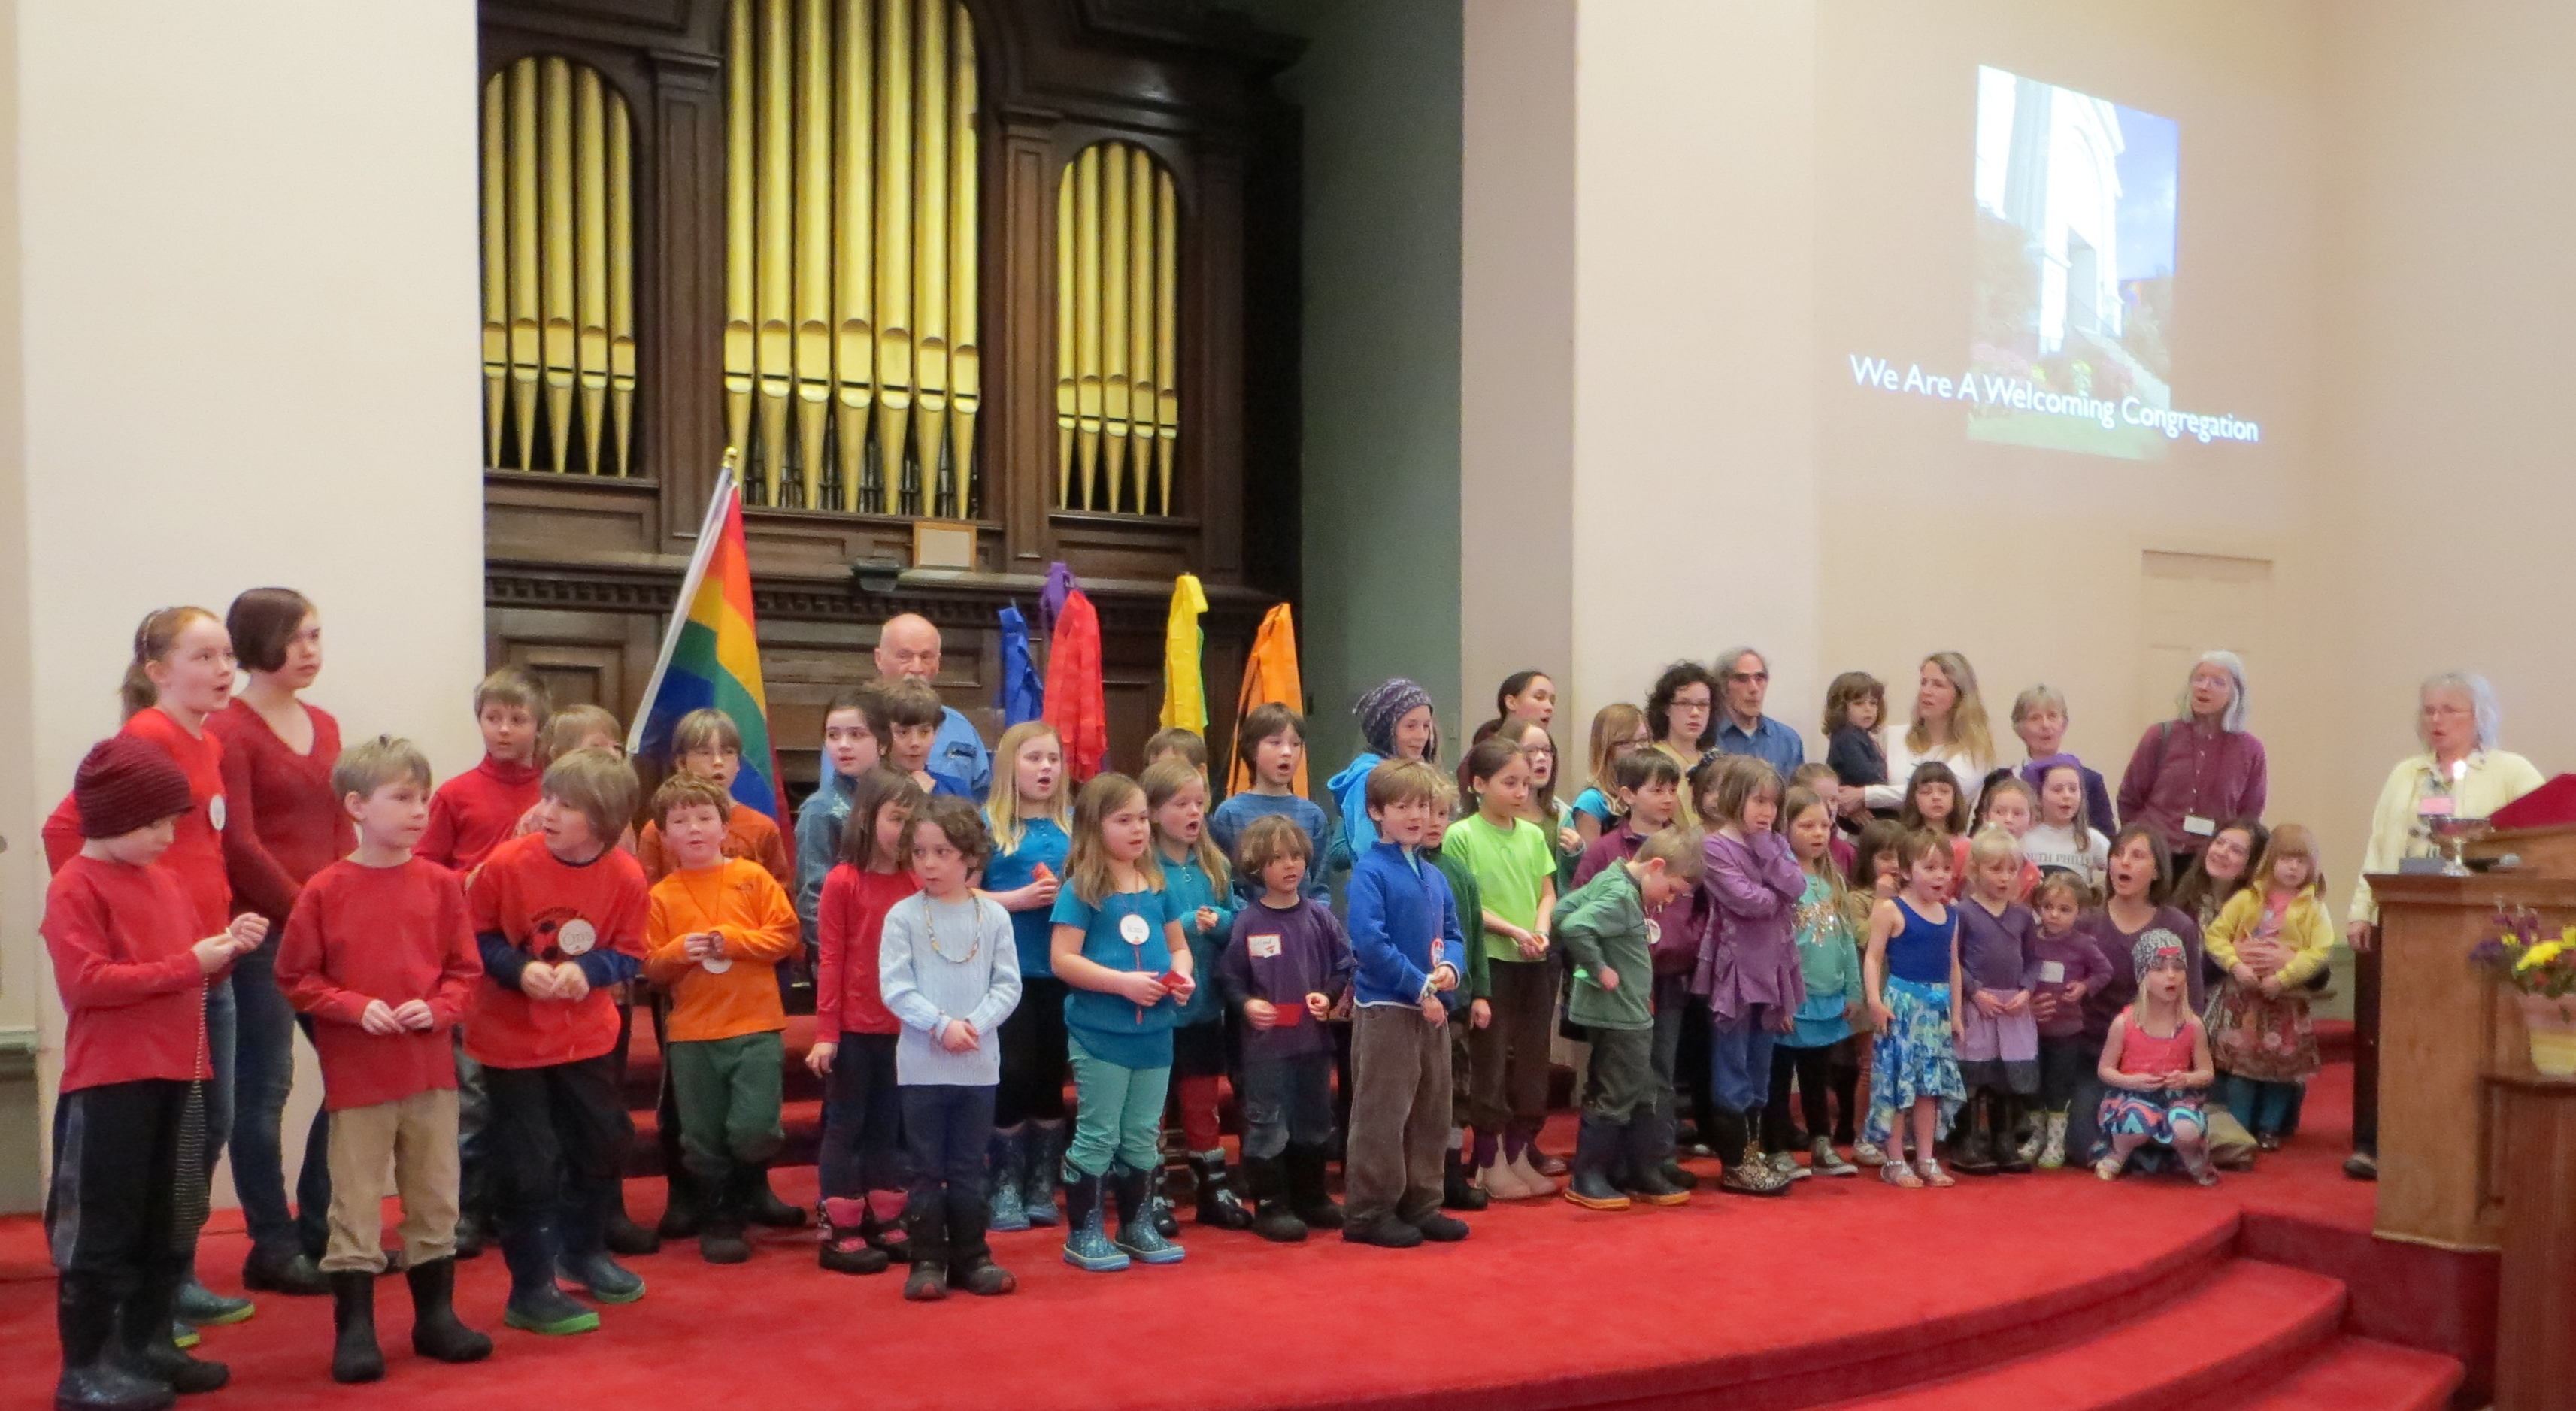 The church children dressed in rainbow colors as part of the 2014 celebration of the LGBTQ community: Photo by Dave Armstrong